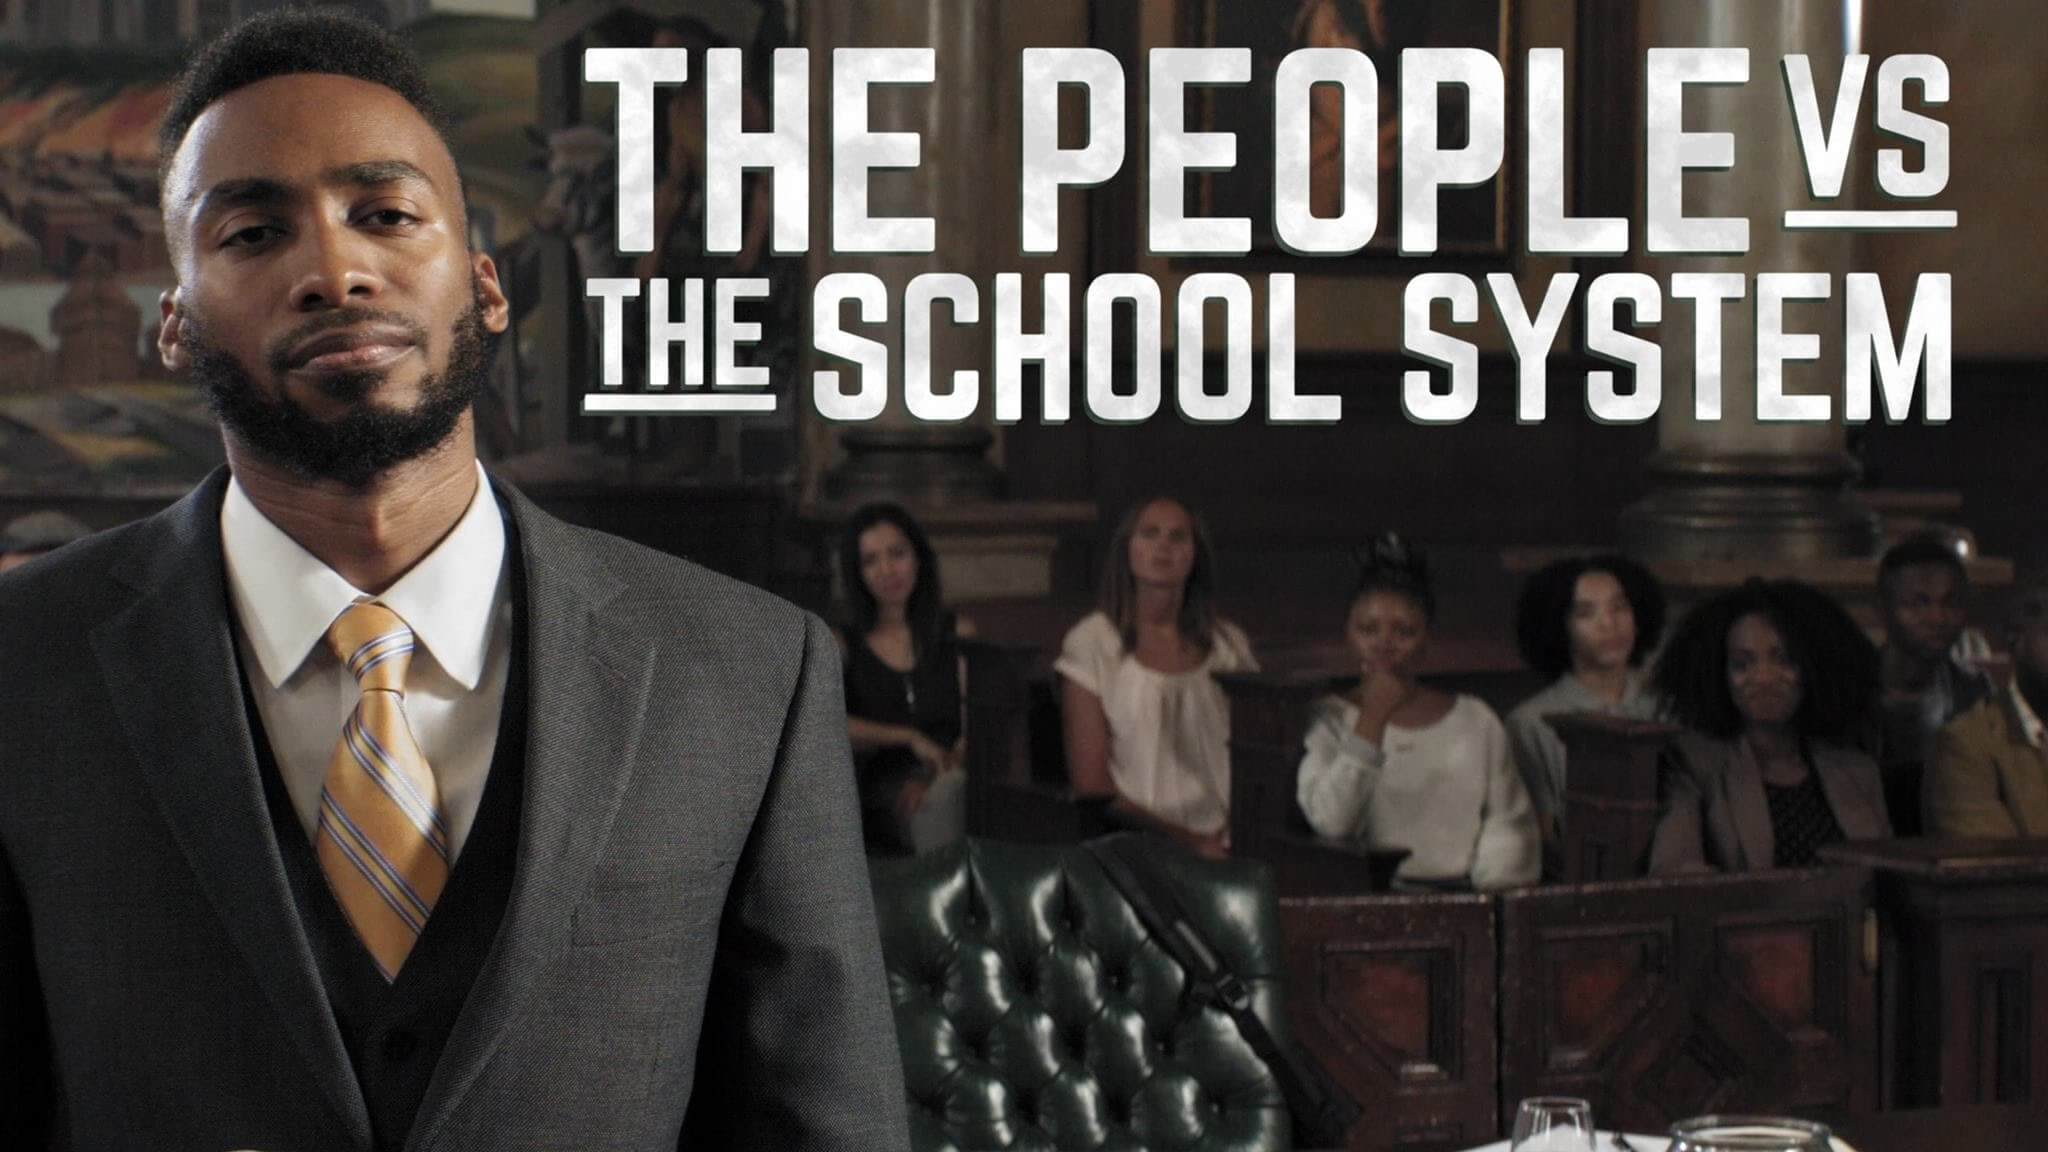 people vs school system